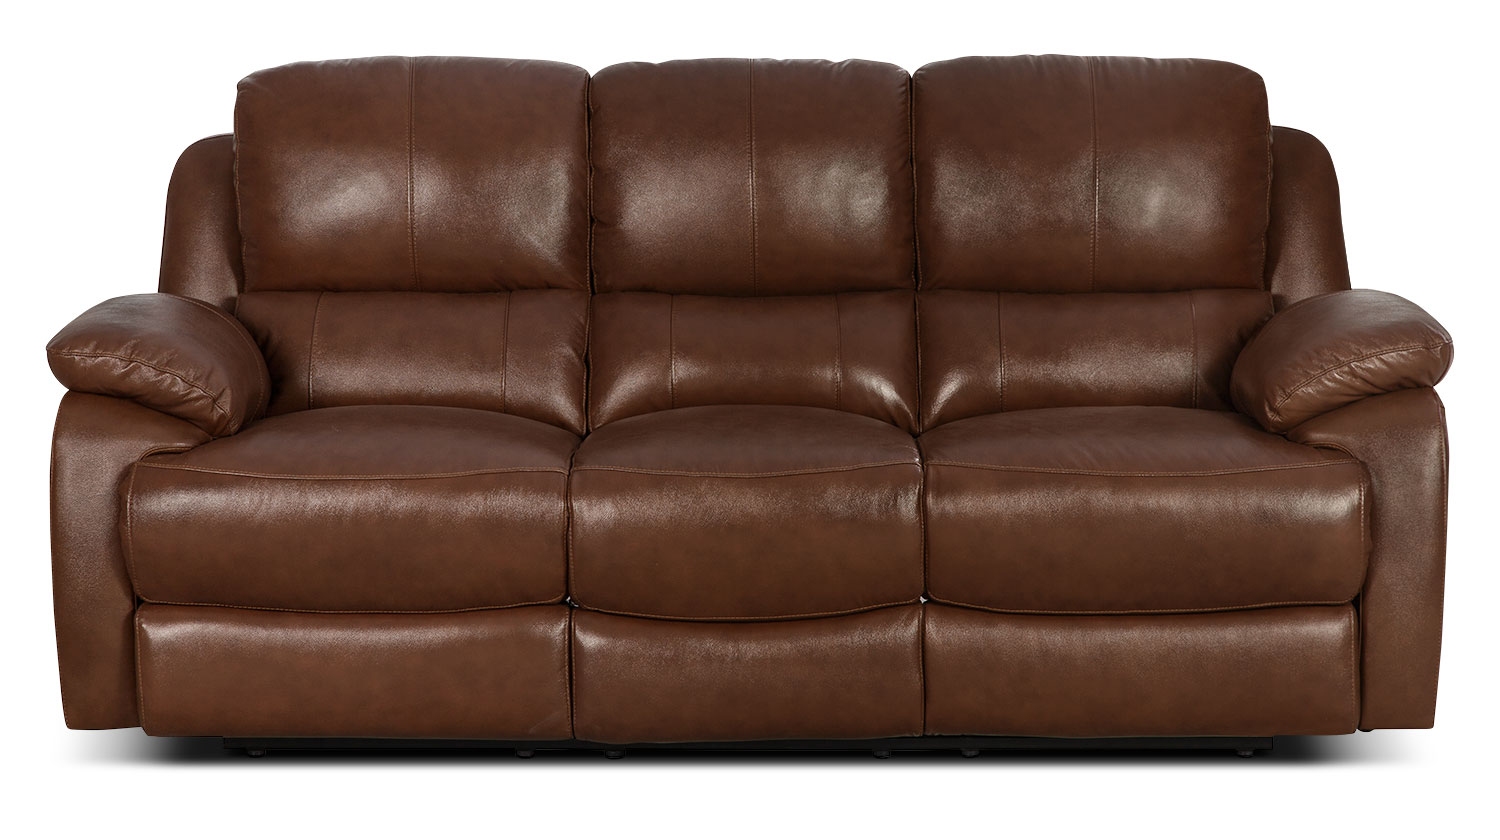 Cairo Genuine Leather Reclining Sofa – Brown